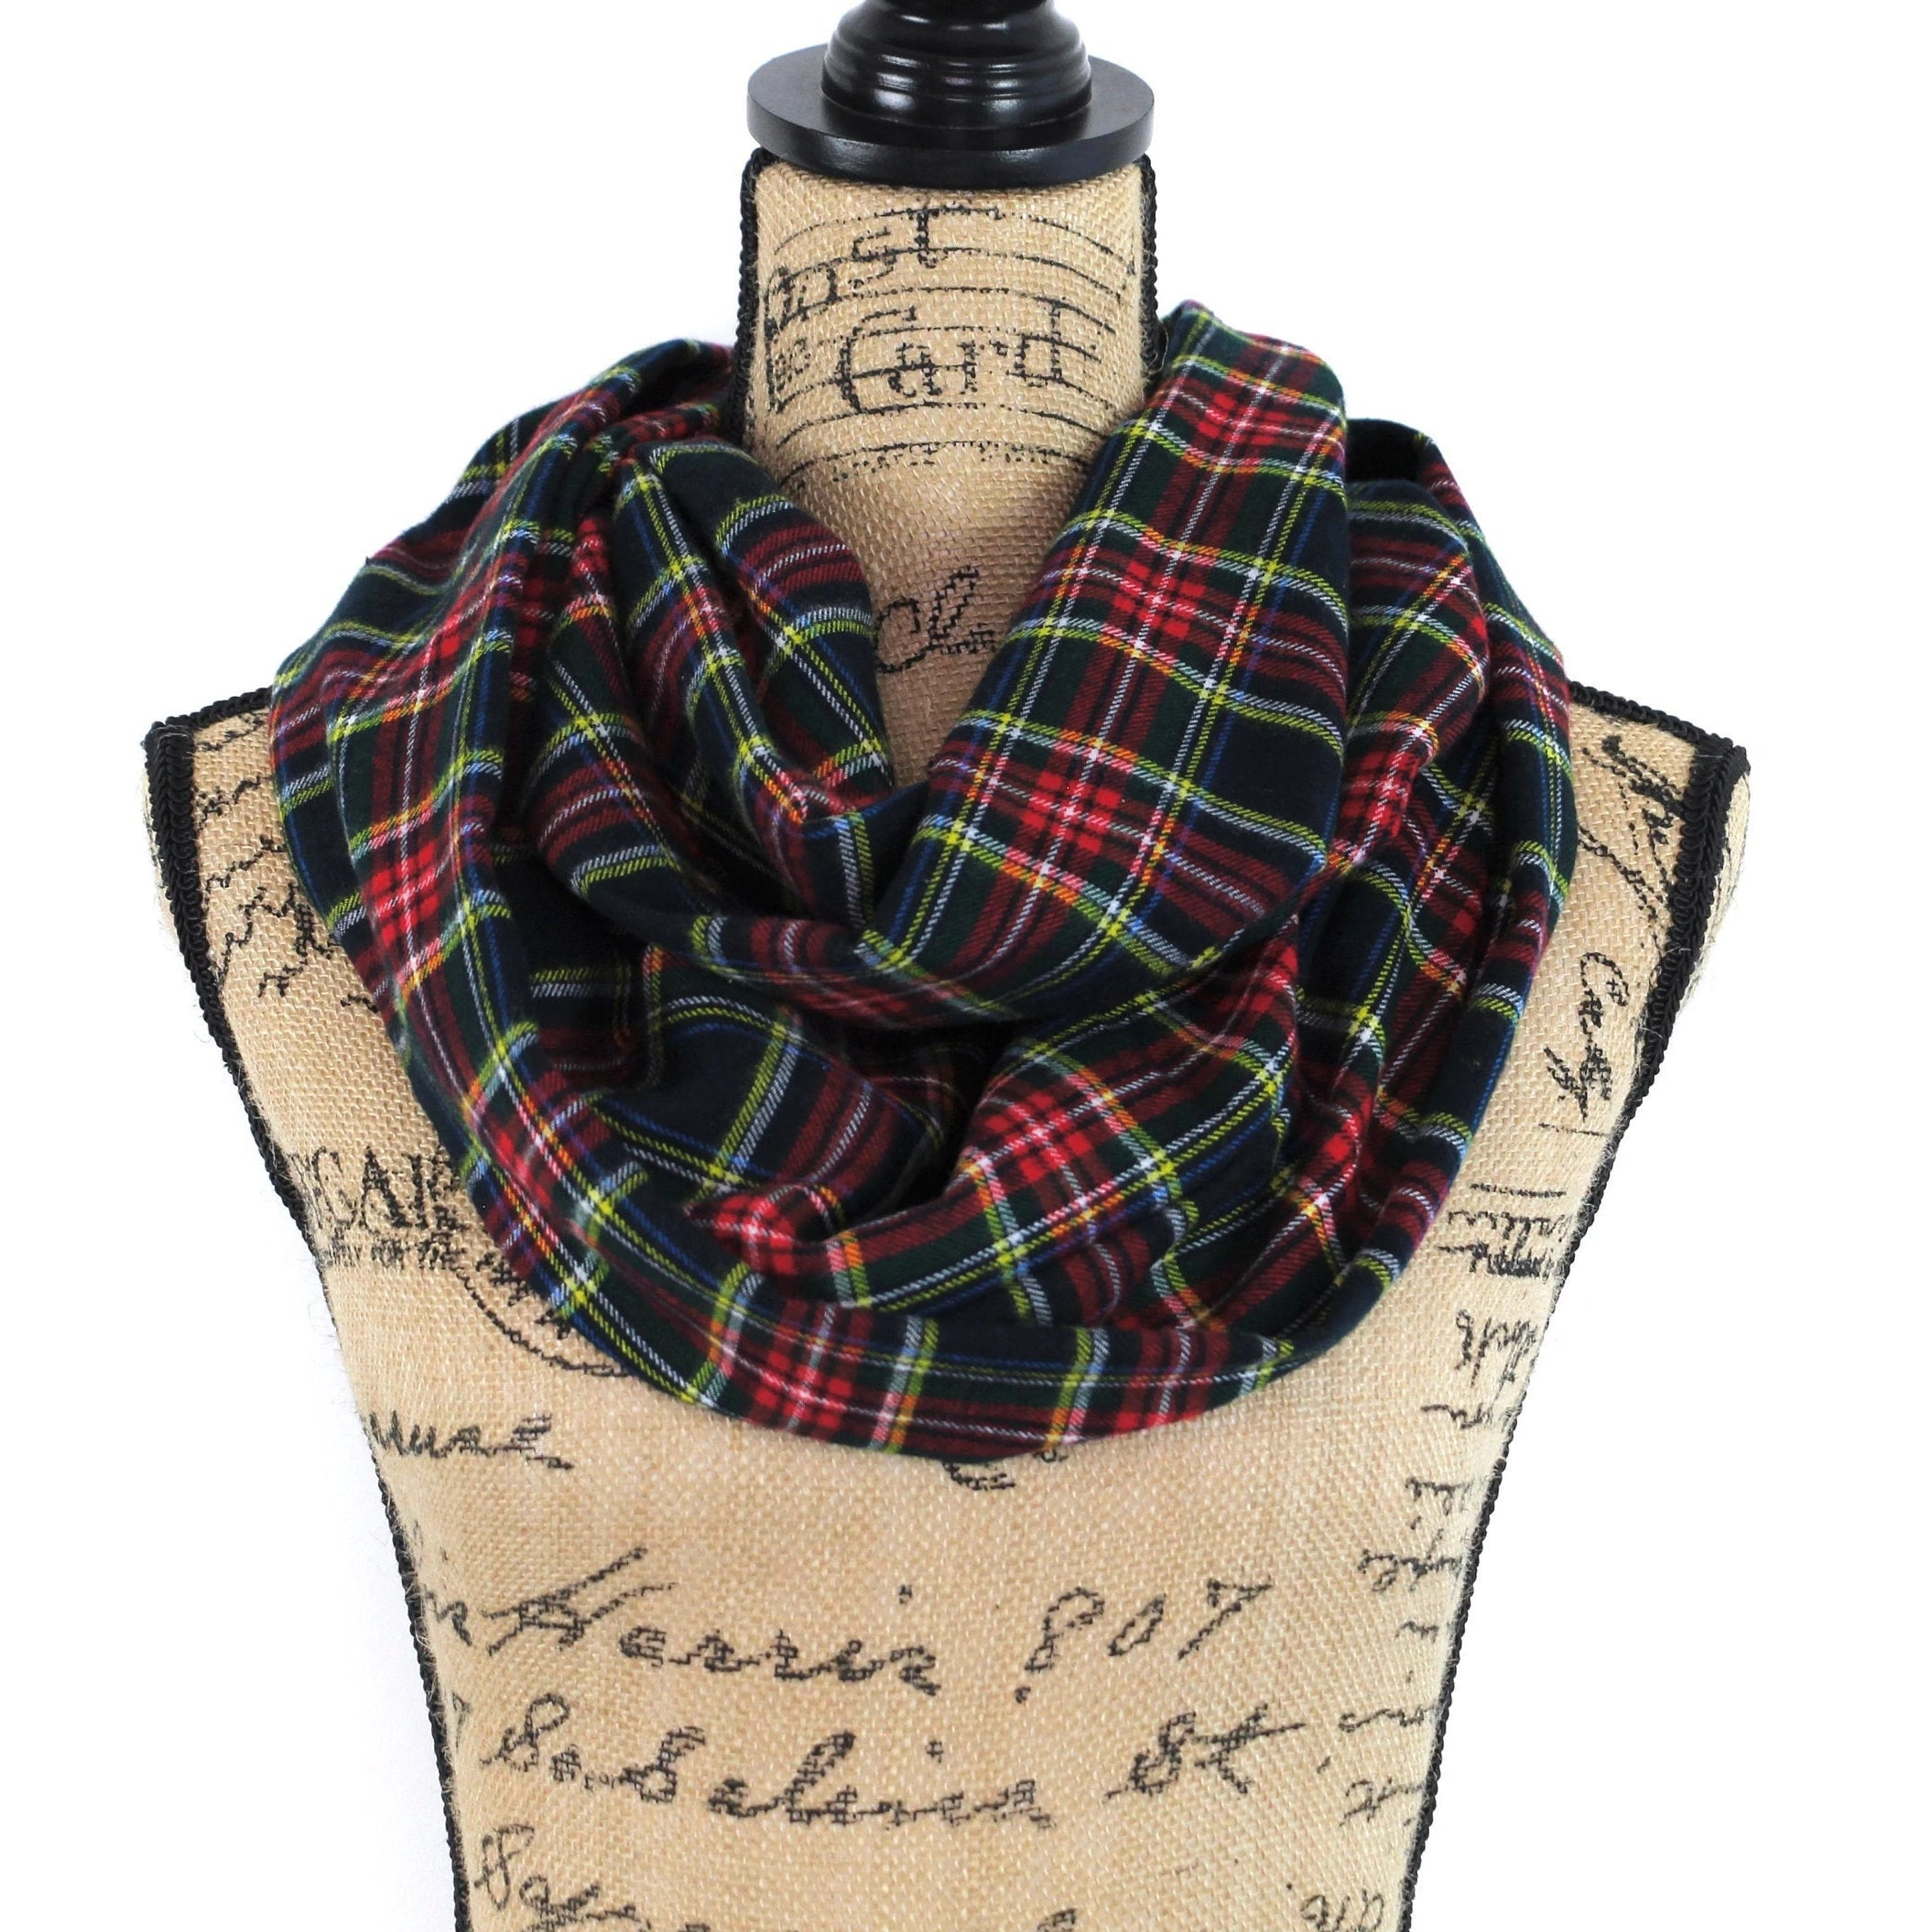 Black Stewart Tartan Lightweight Flannel Plaid Infinity or Blanket Scarf